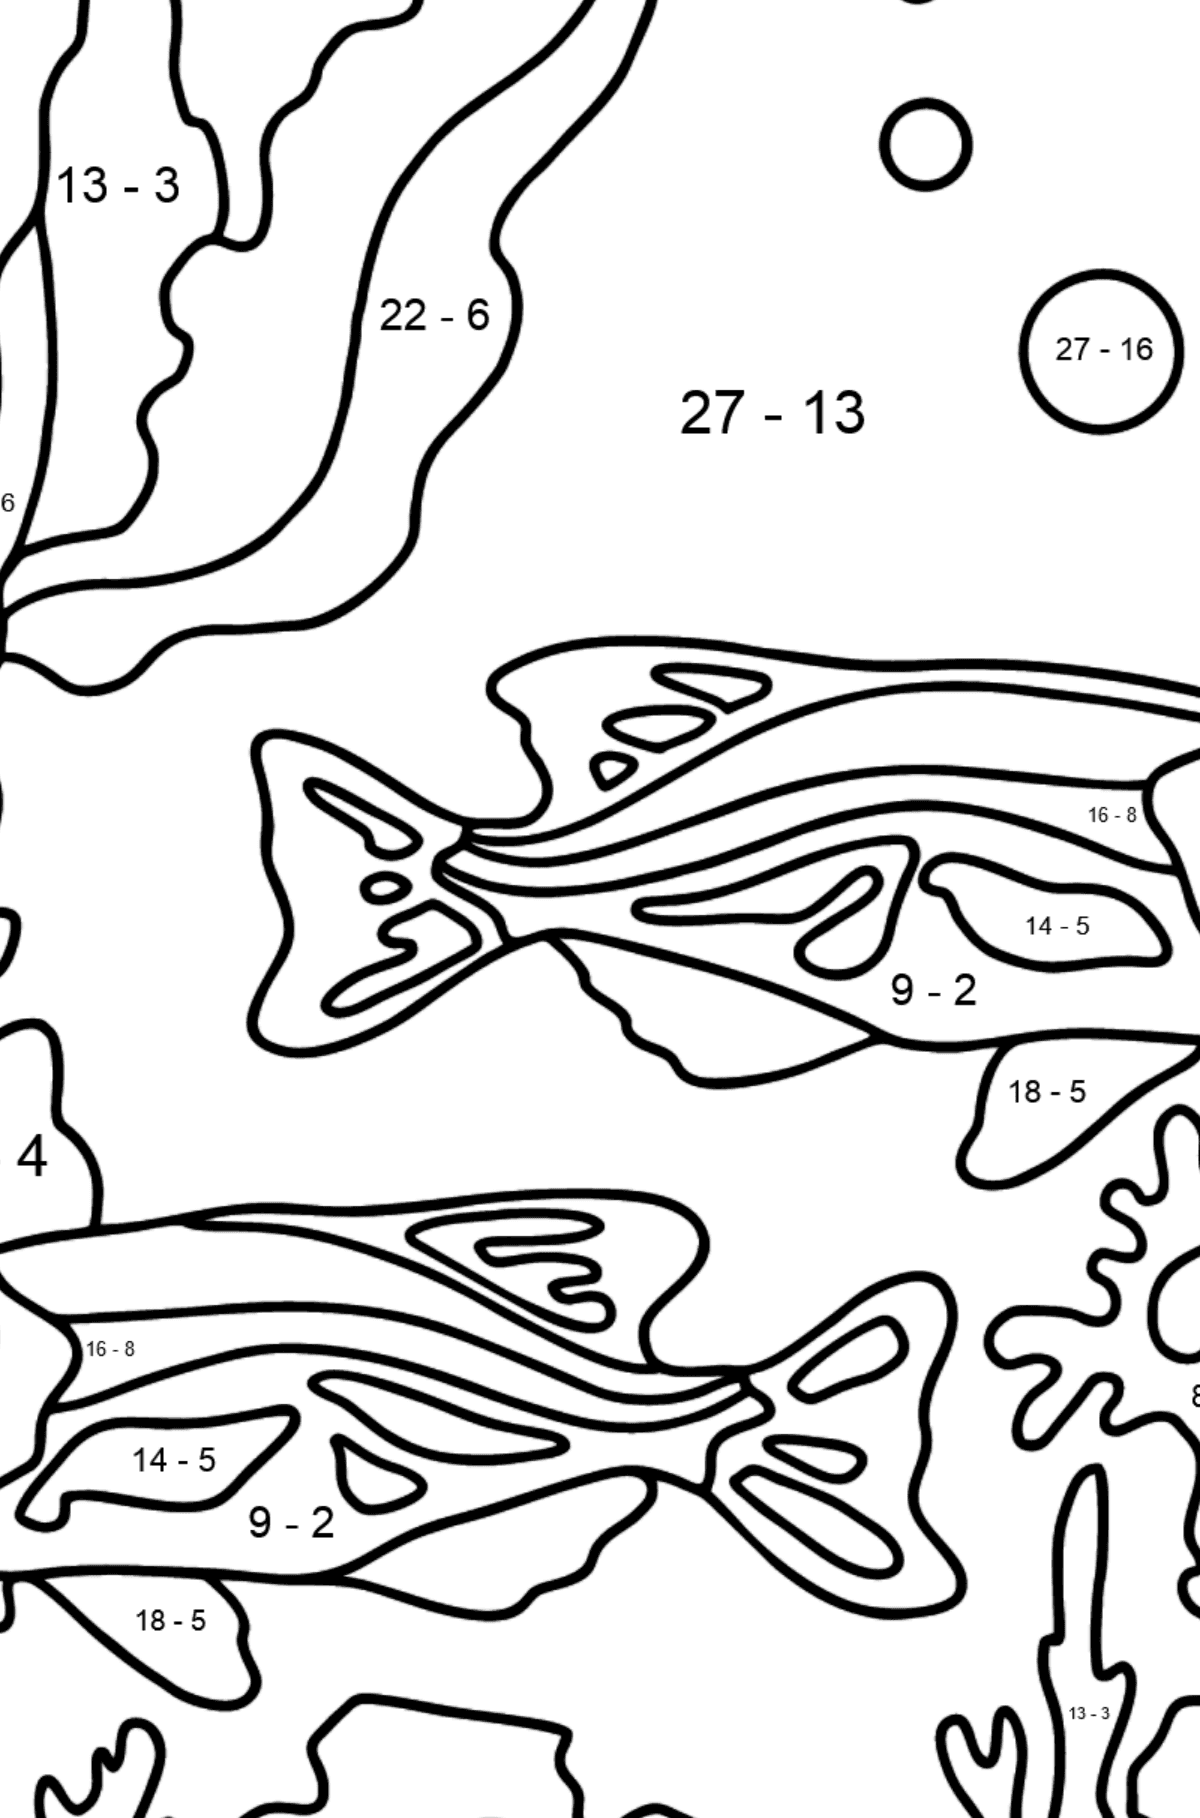 Coloring Page - Fish are Swimming Together Peacefully - Math Coloring - Subtraction for Kids